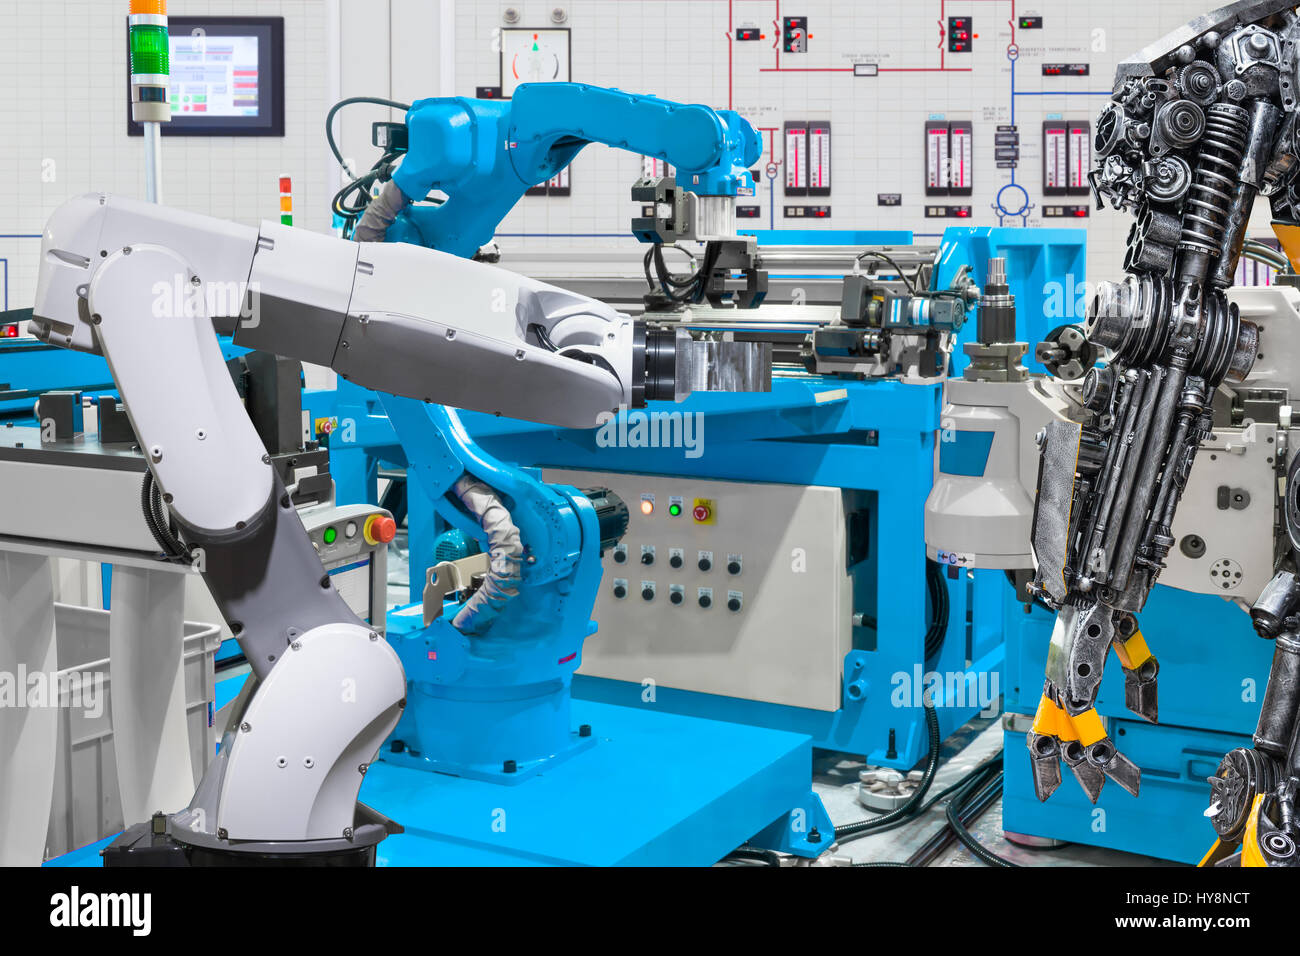 Human robot control automatic robotic hand machine tool at industrial manufacture factory, Technology robotic concept - Stock Image